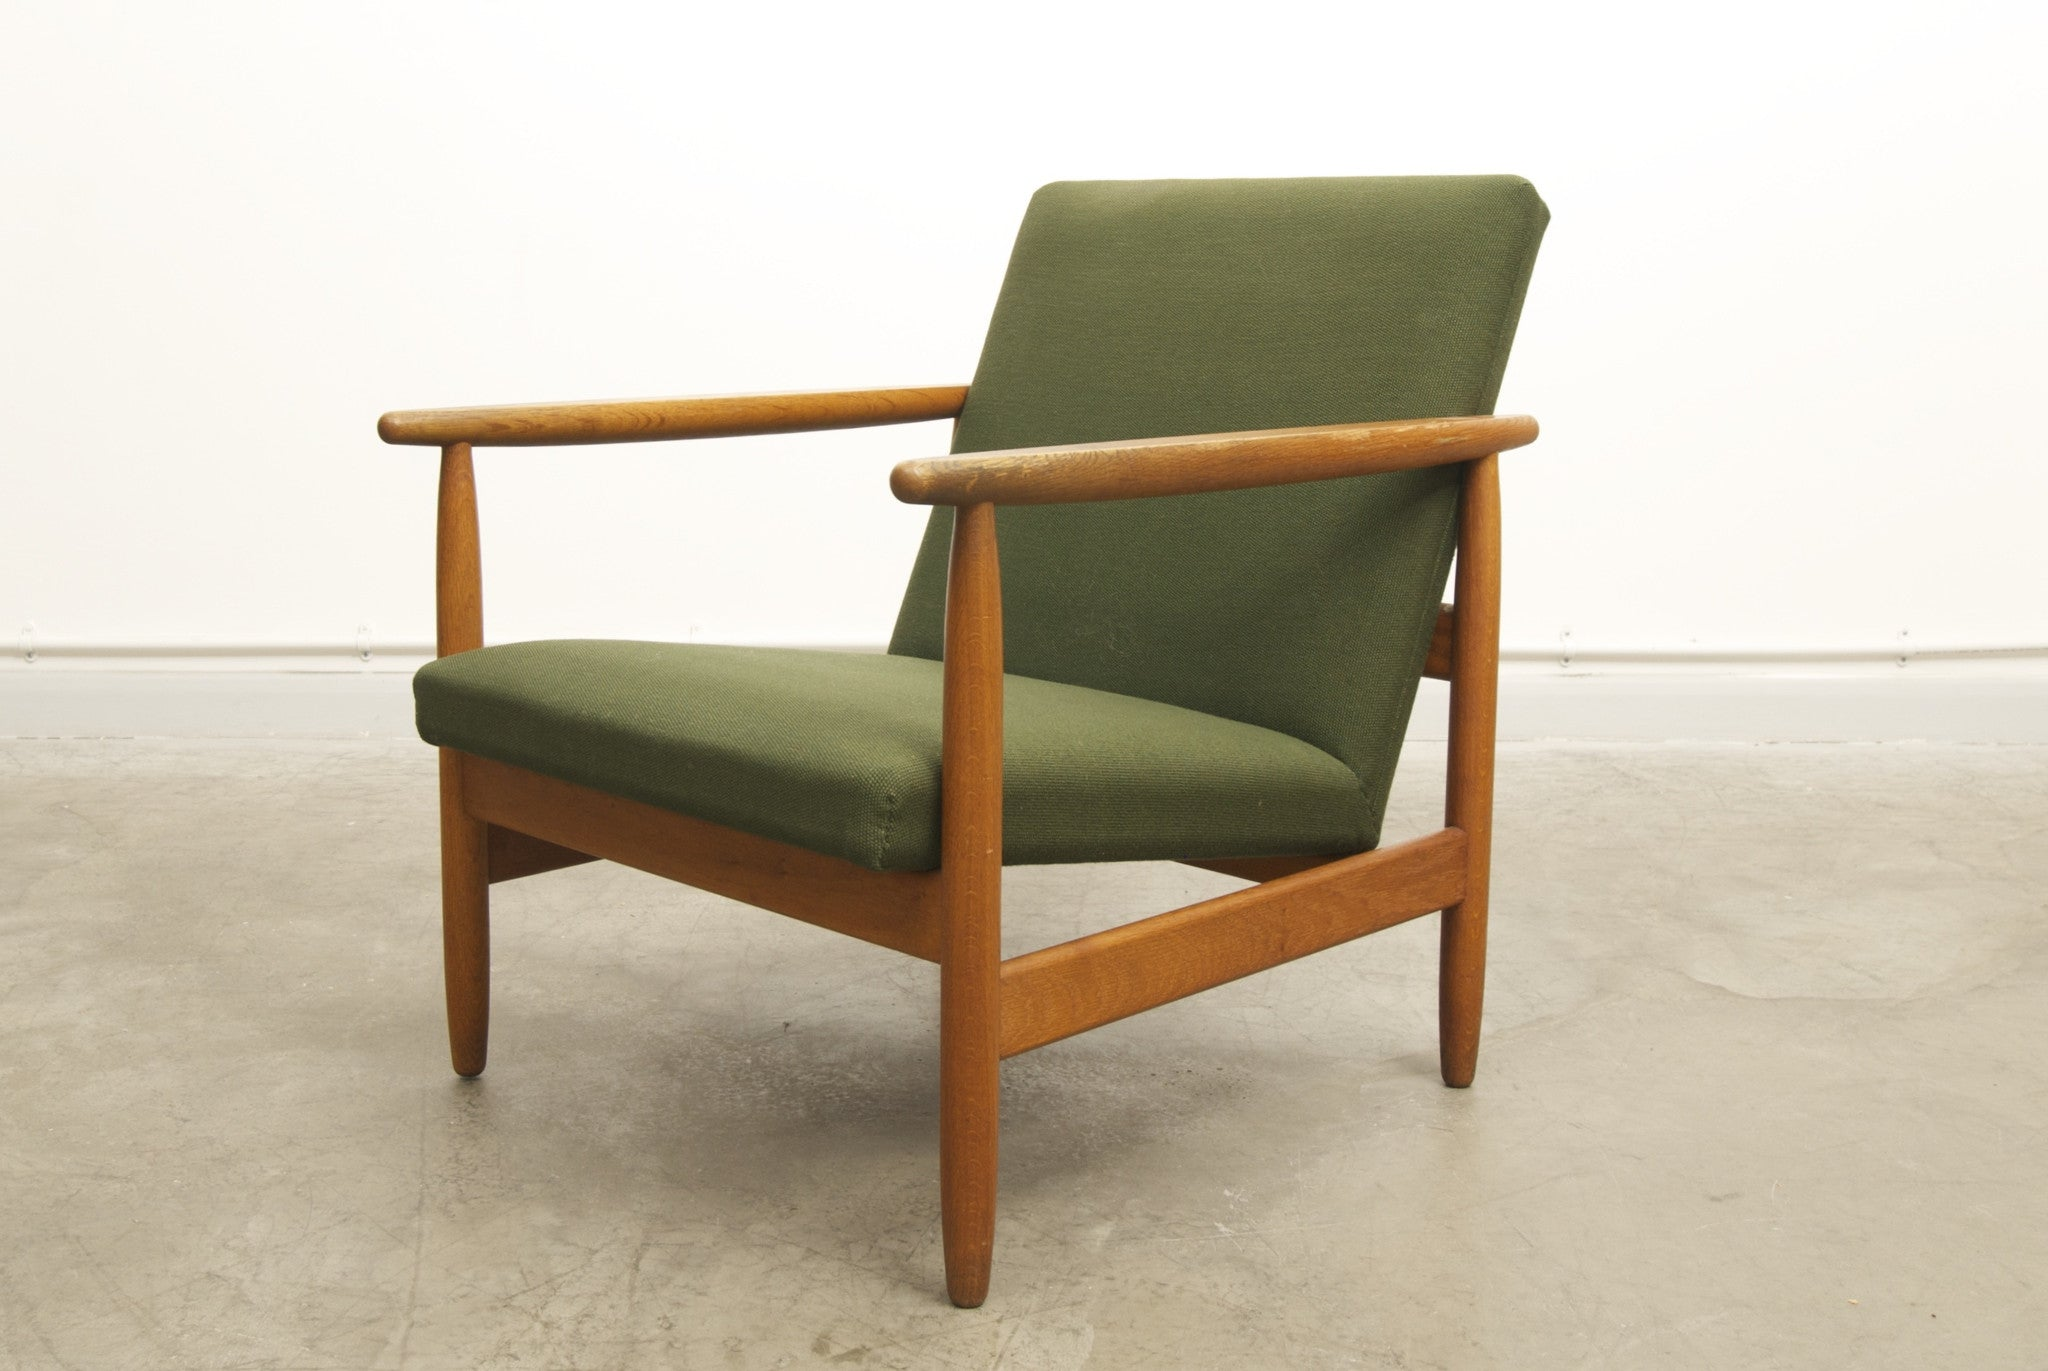 Oak and wool lounger by JÌürgen BÌ_kmark